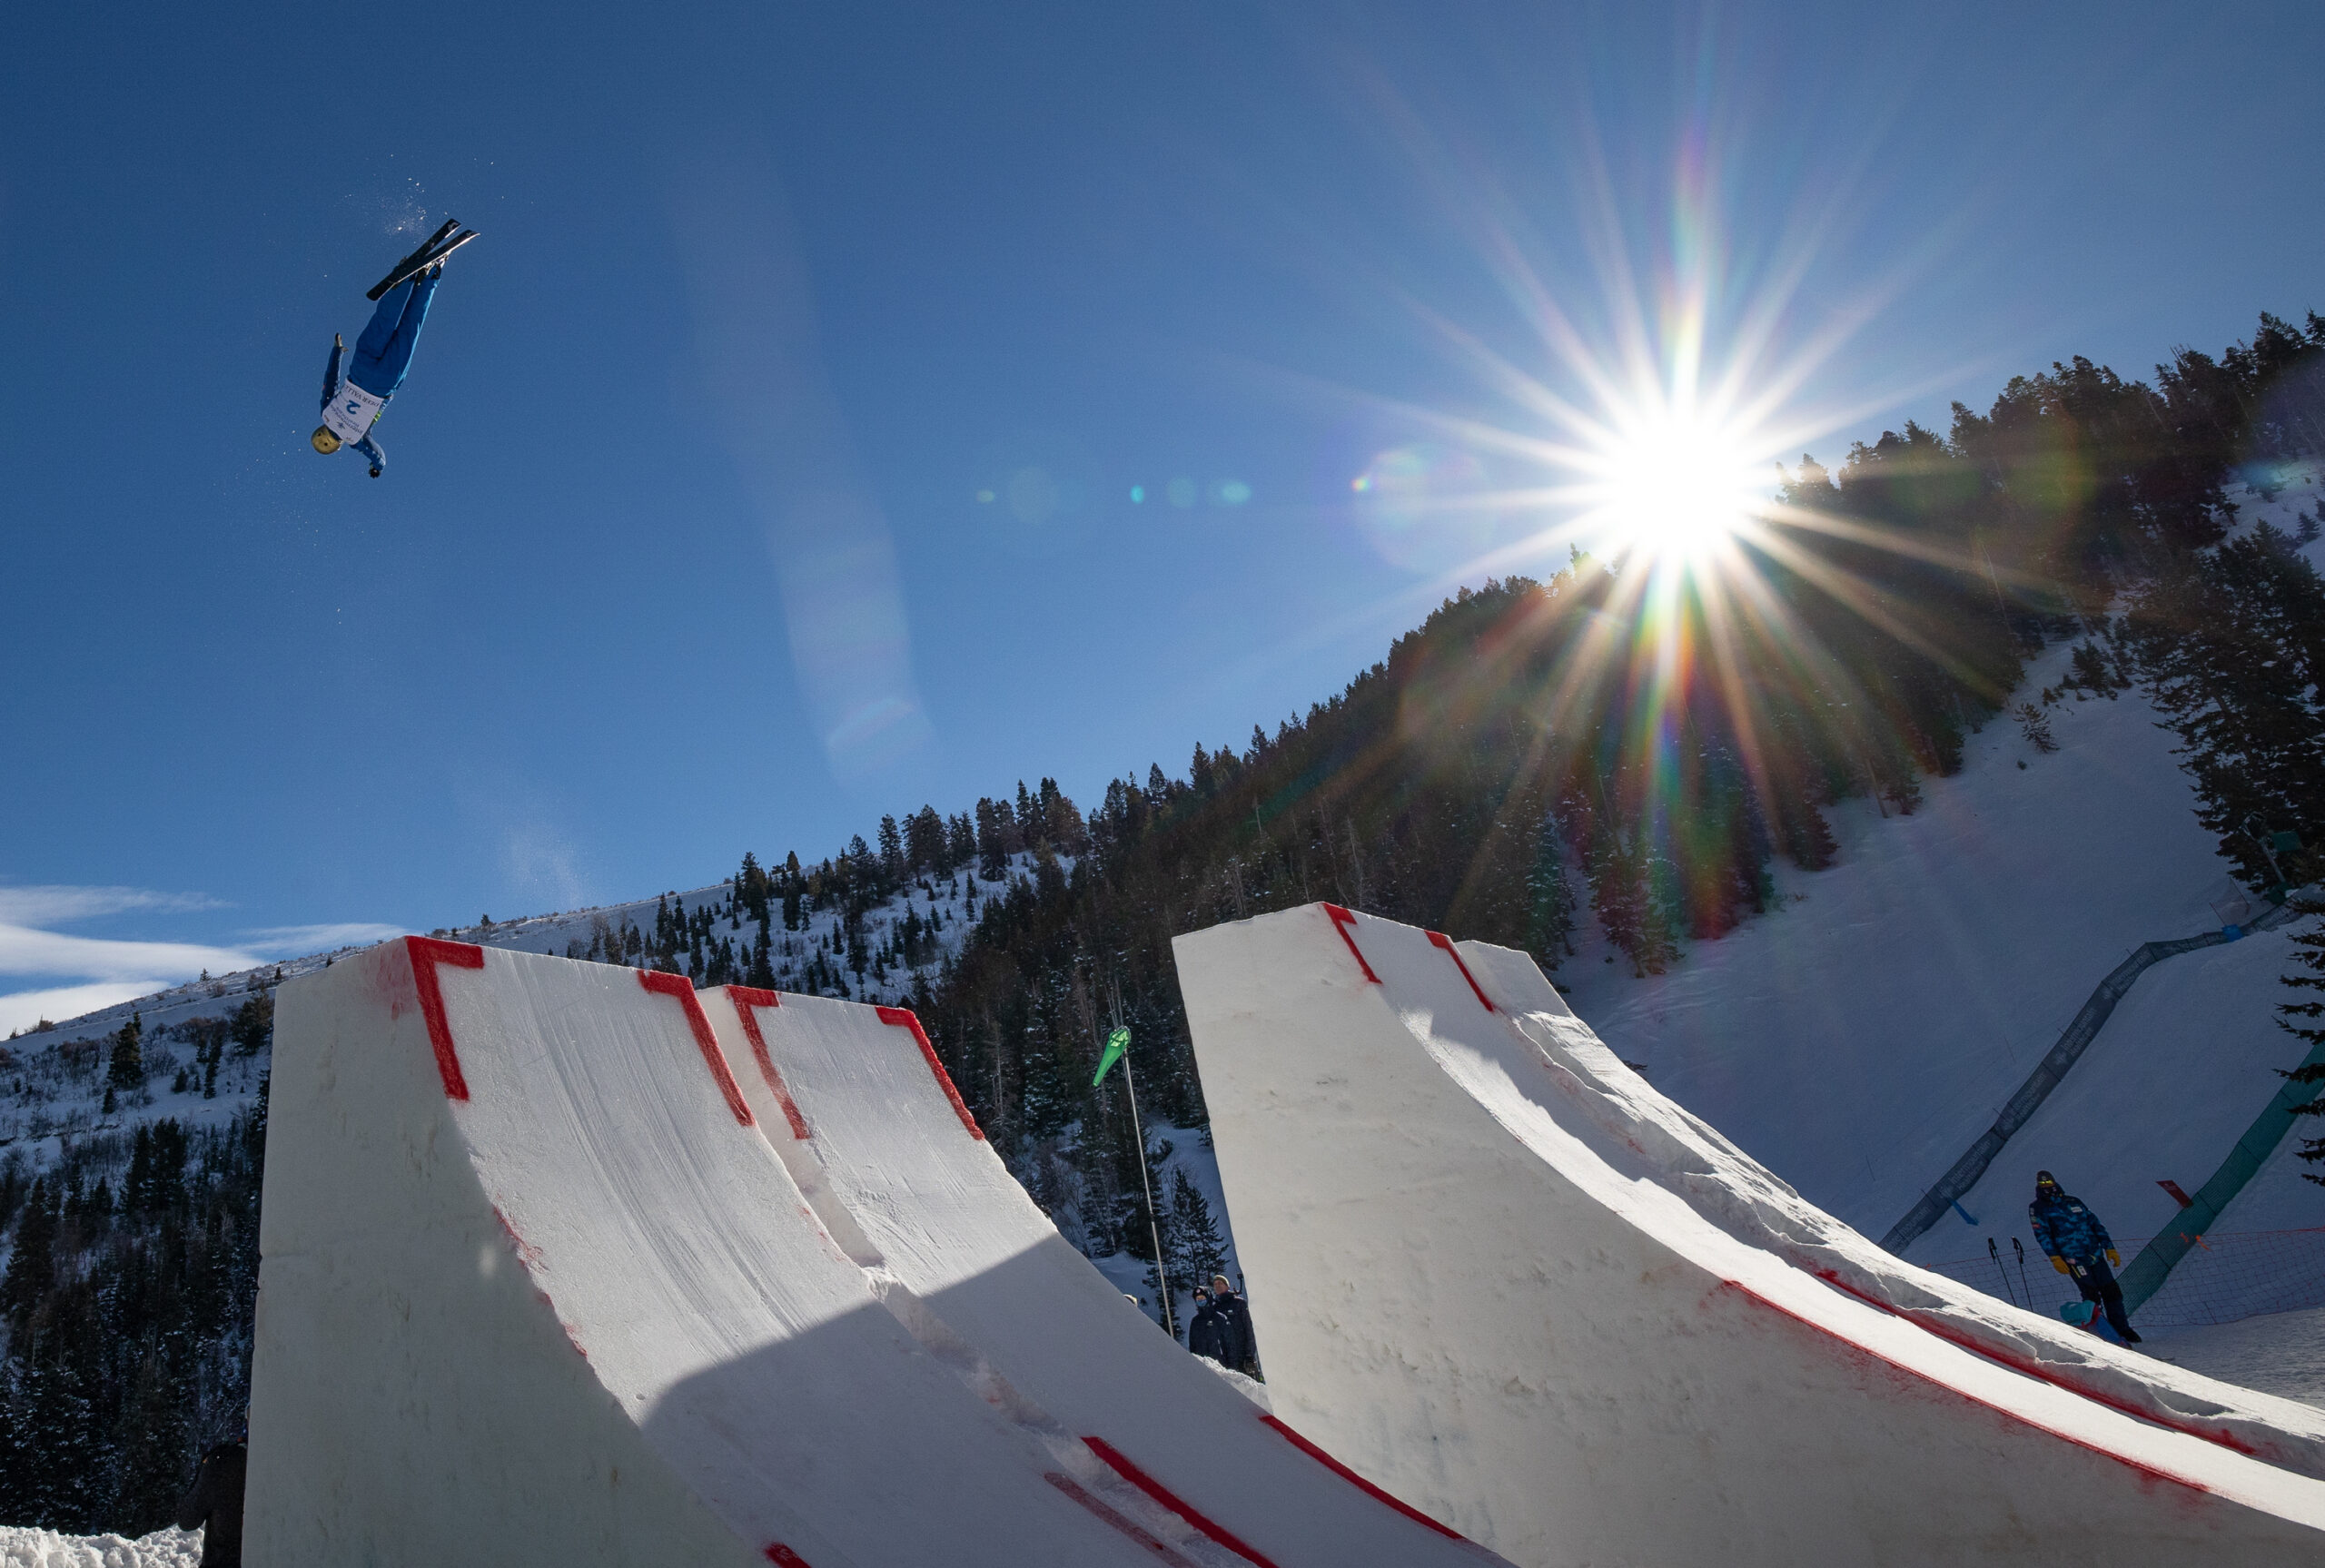 2021 Intermountain Healthcare Freestyle International FIS Ski World Cup at Deer Valley ResortAerialsPhoto: Steven Kornreich/U.S. Ski Team@usskiteam // @steven_kornreich